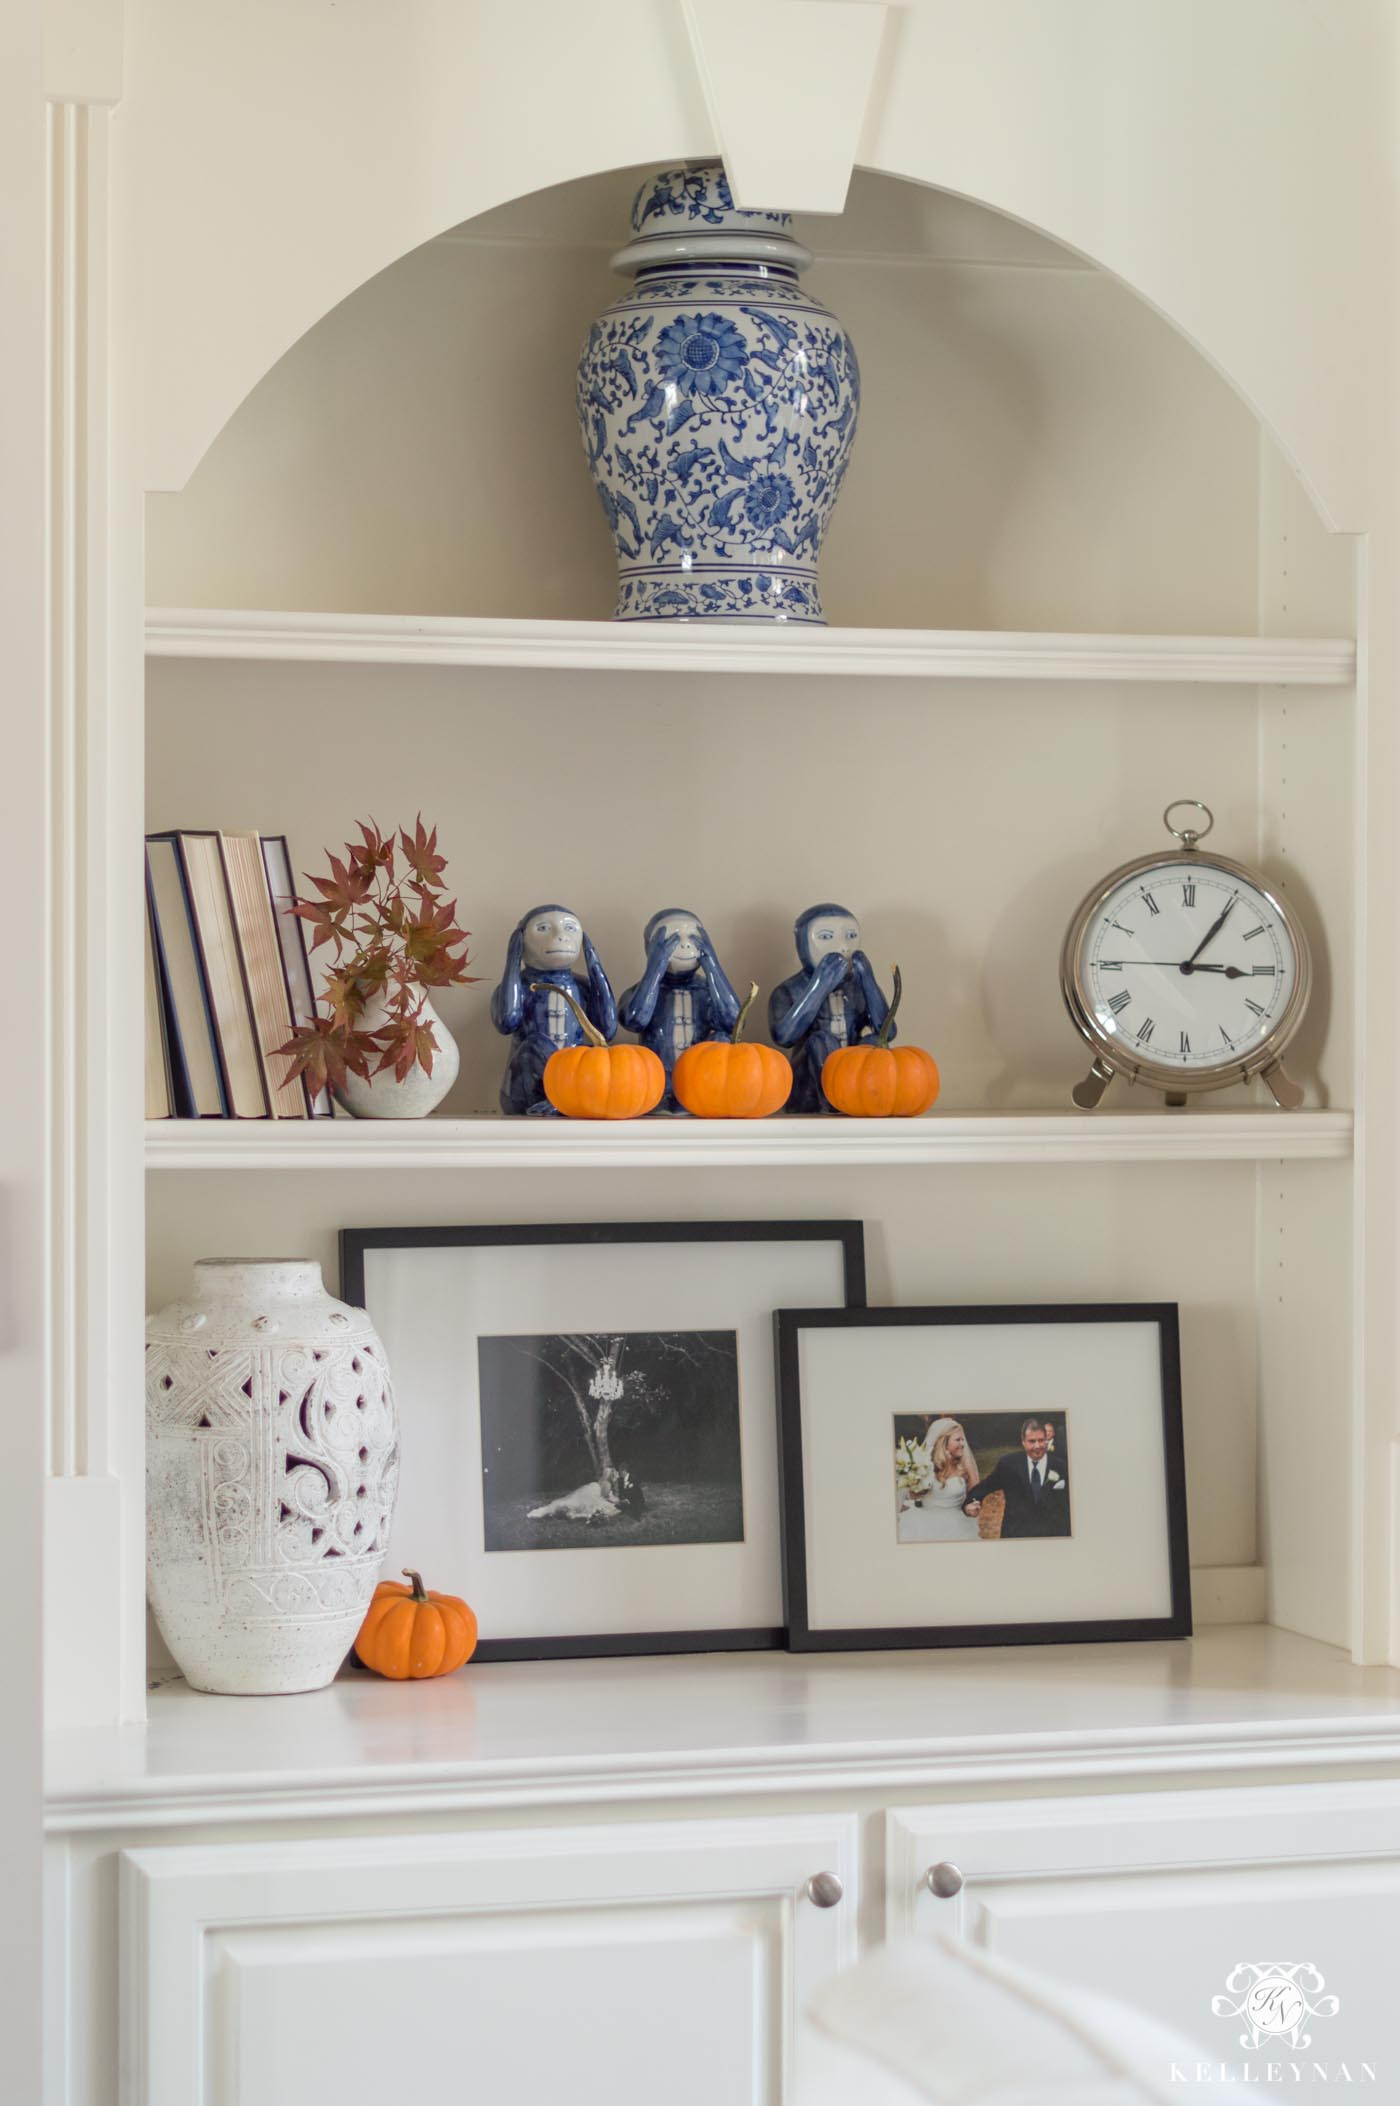 How to decorate builtin shelves for fall